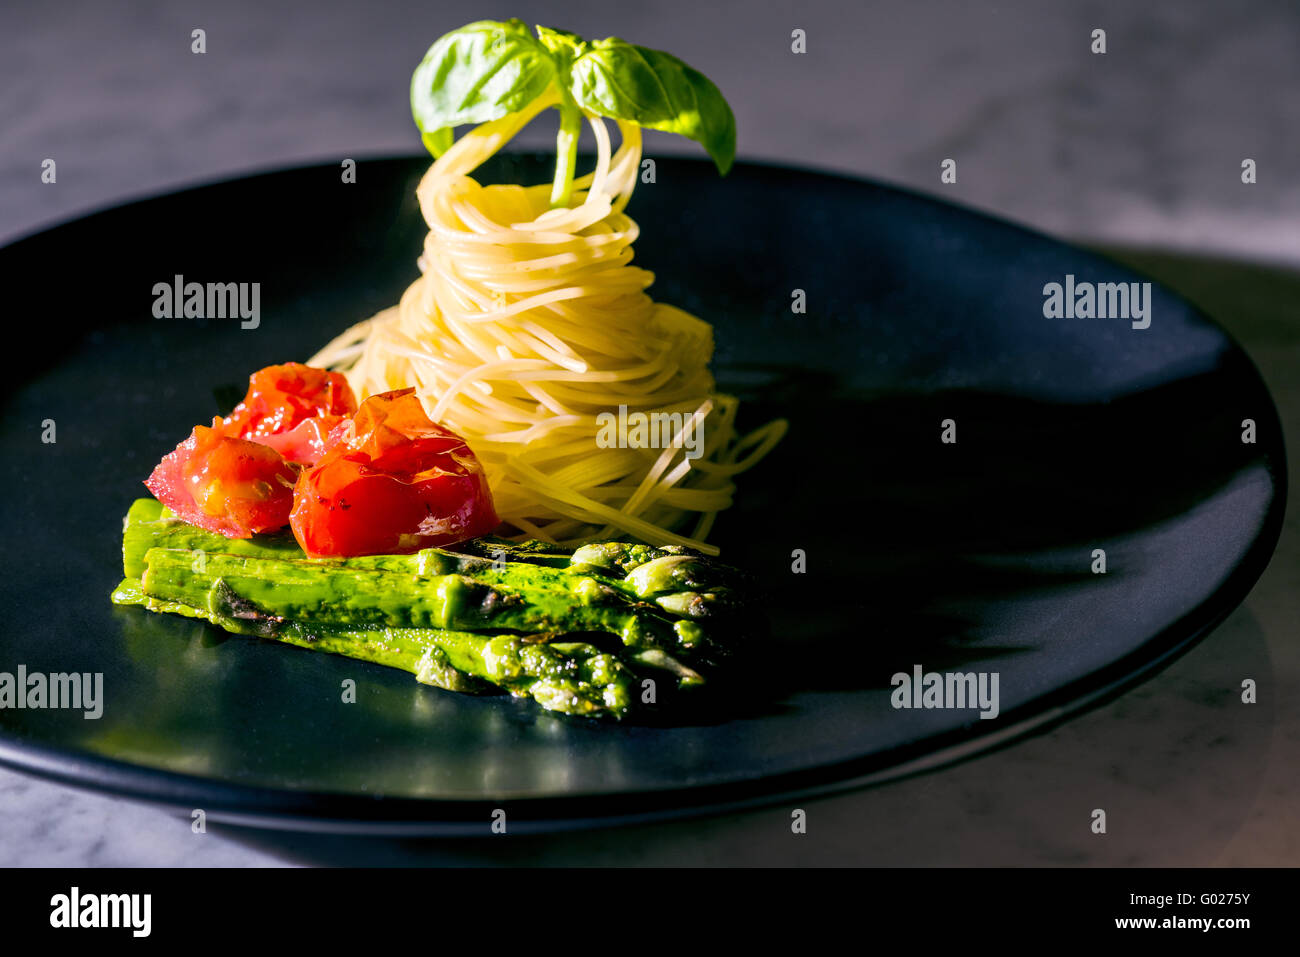 Pasta noodles spaghetti tomatoes basil asparagus on black plate green red black fine food italian italy classy fast - Stock Image